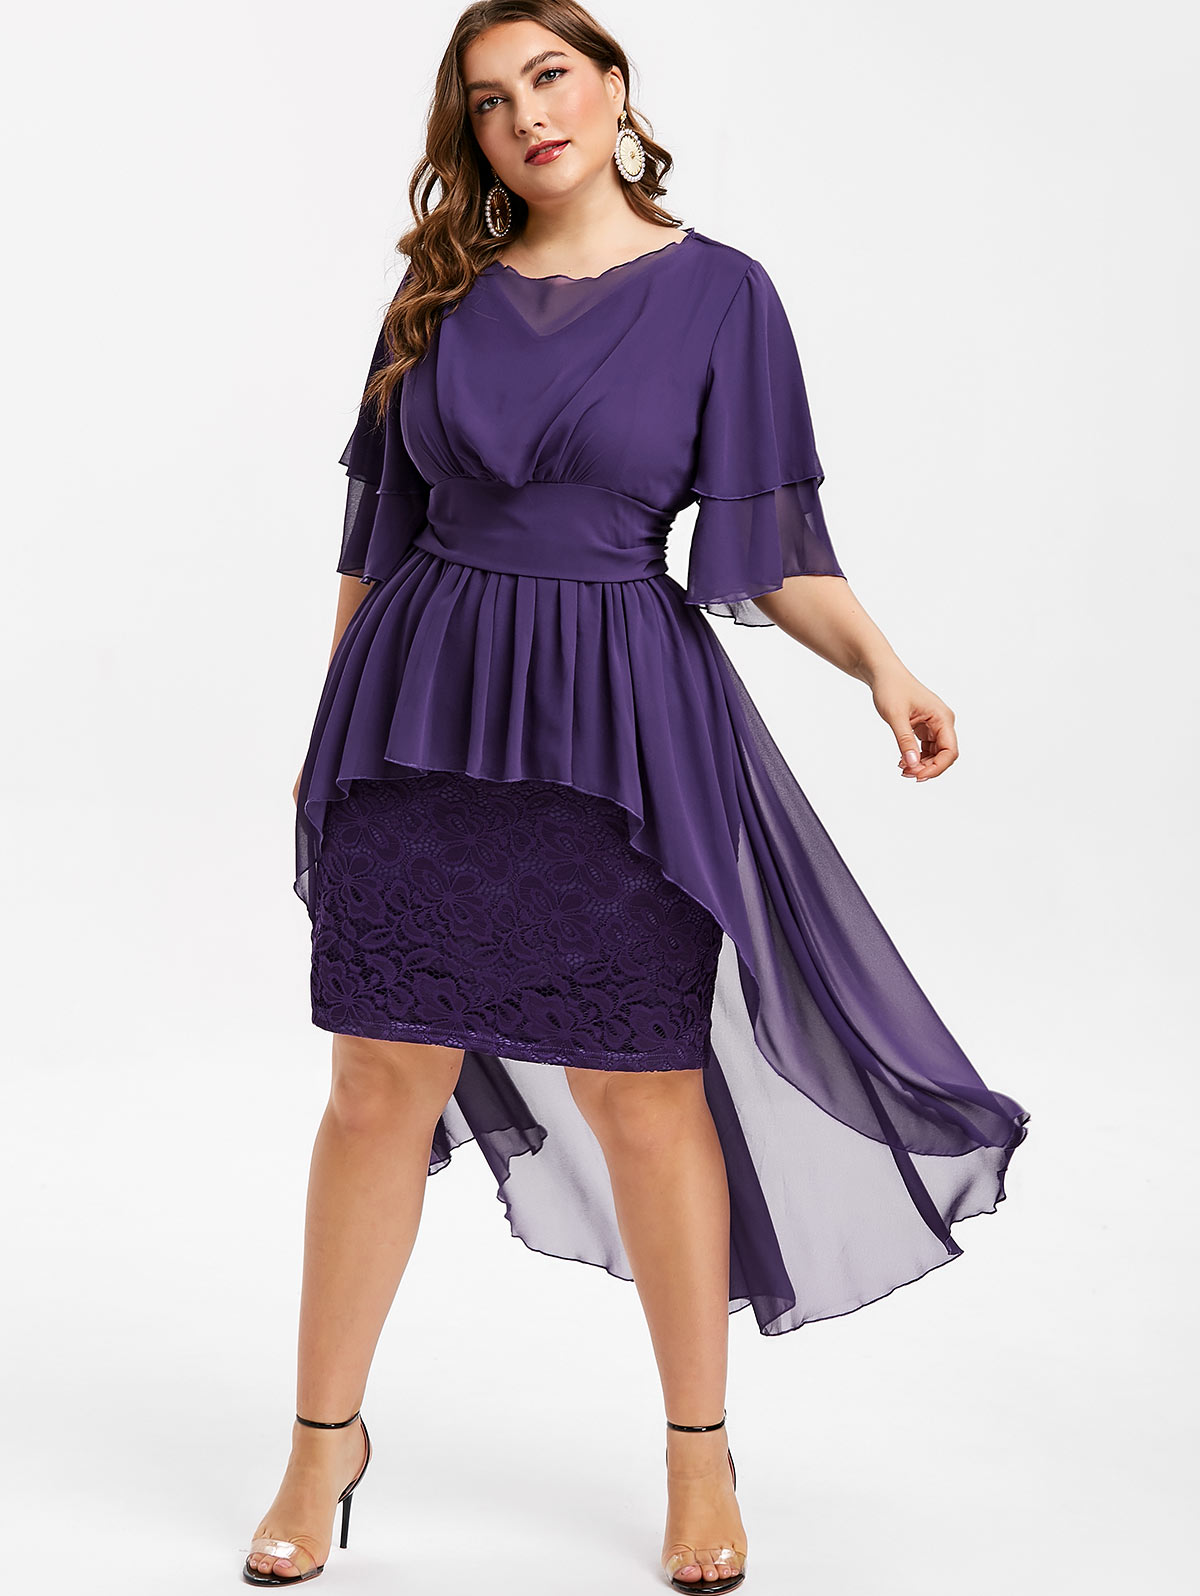 US $31.49 30% OFF|Wipalo Women Lace Panel Plus Size 5XL High Low Dress  Layered Sleeve Mid Calf Bodycon Dress Solid Elegant Club Party Vestidos-in  ...